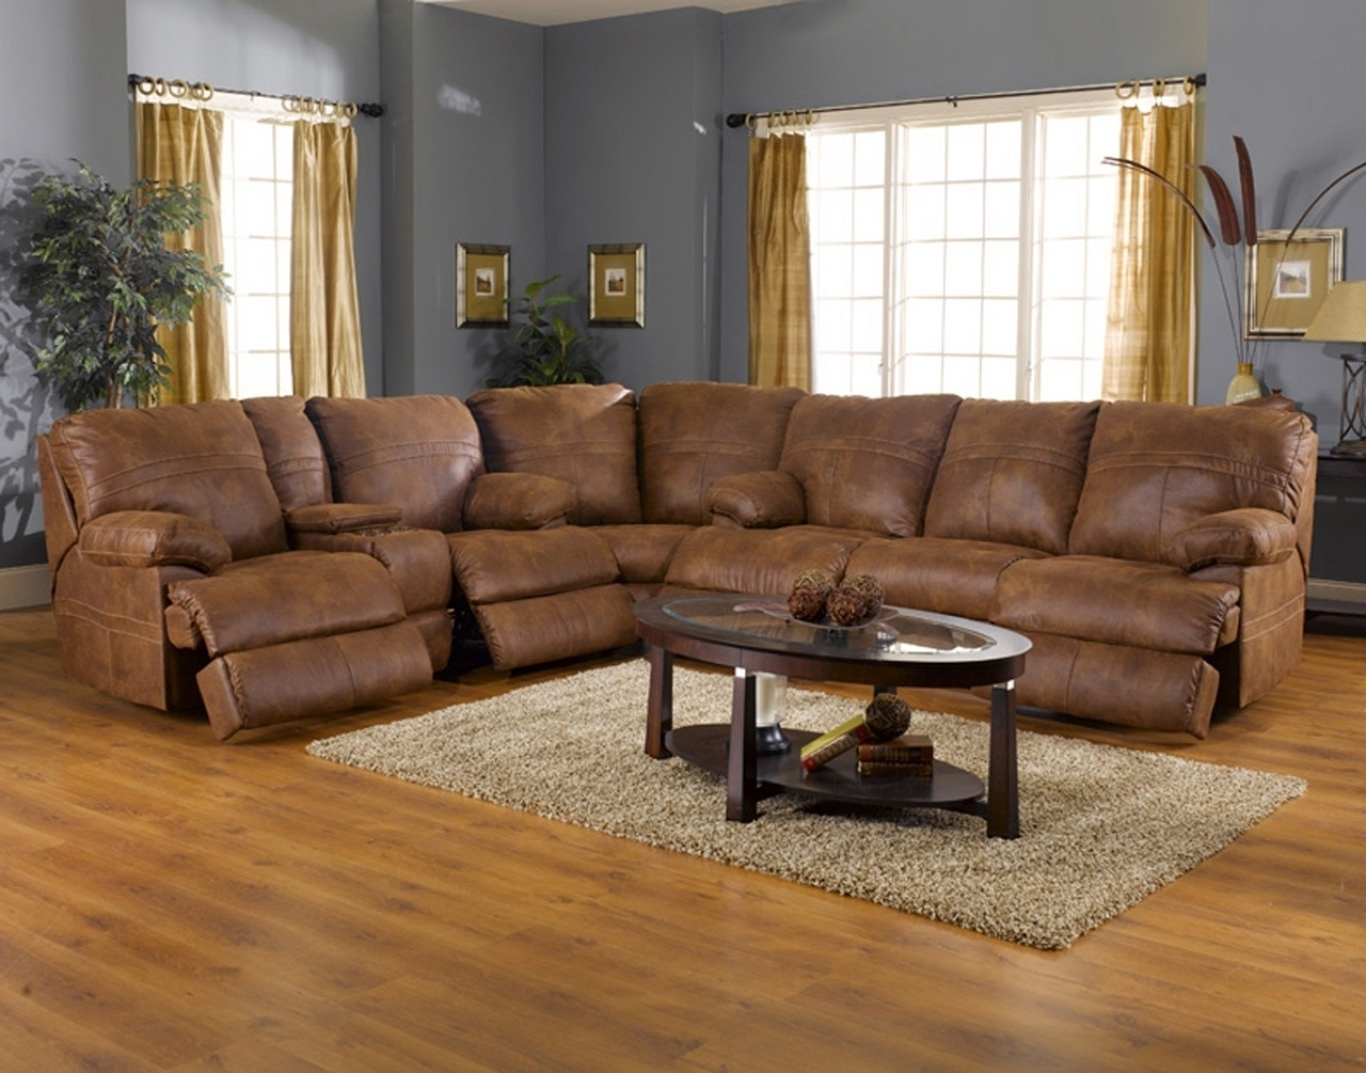 Popular High End Leather Furniture For High End Leather Sectional Sofas (View 19 of 20)